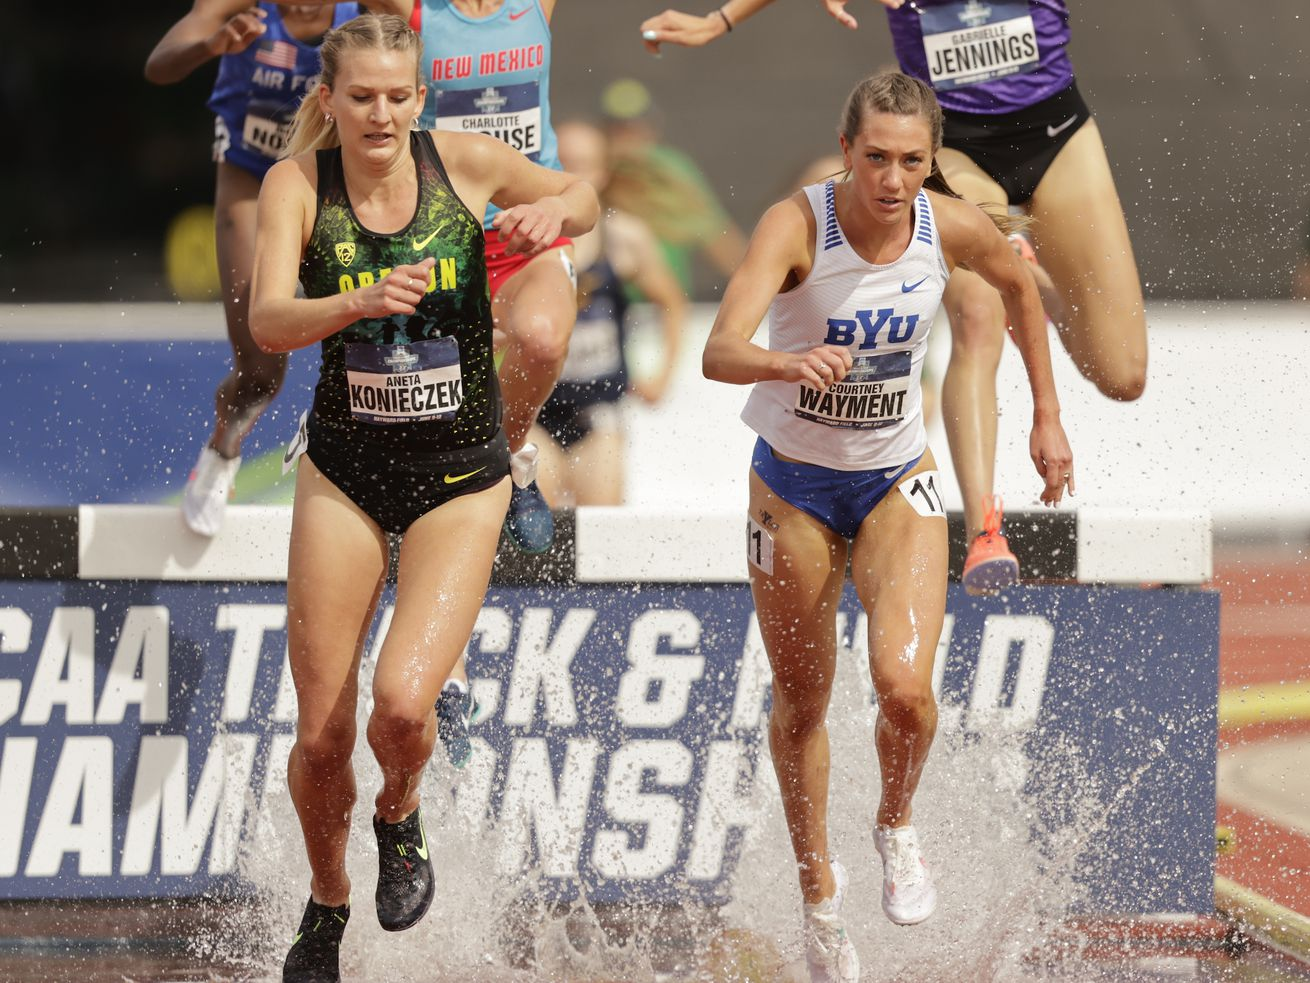 BYU's Courtney Wayment competes in the steeplechase at the NCAA Track and Field Championships in Eugene, Oregon.